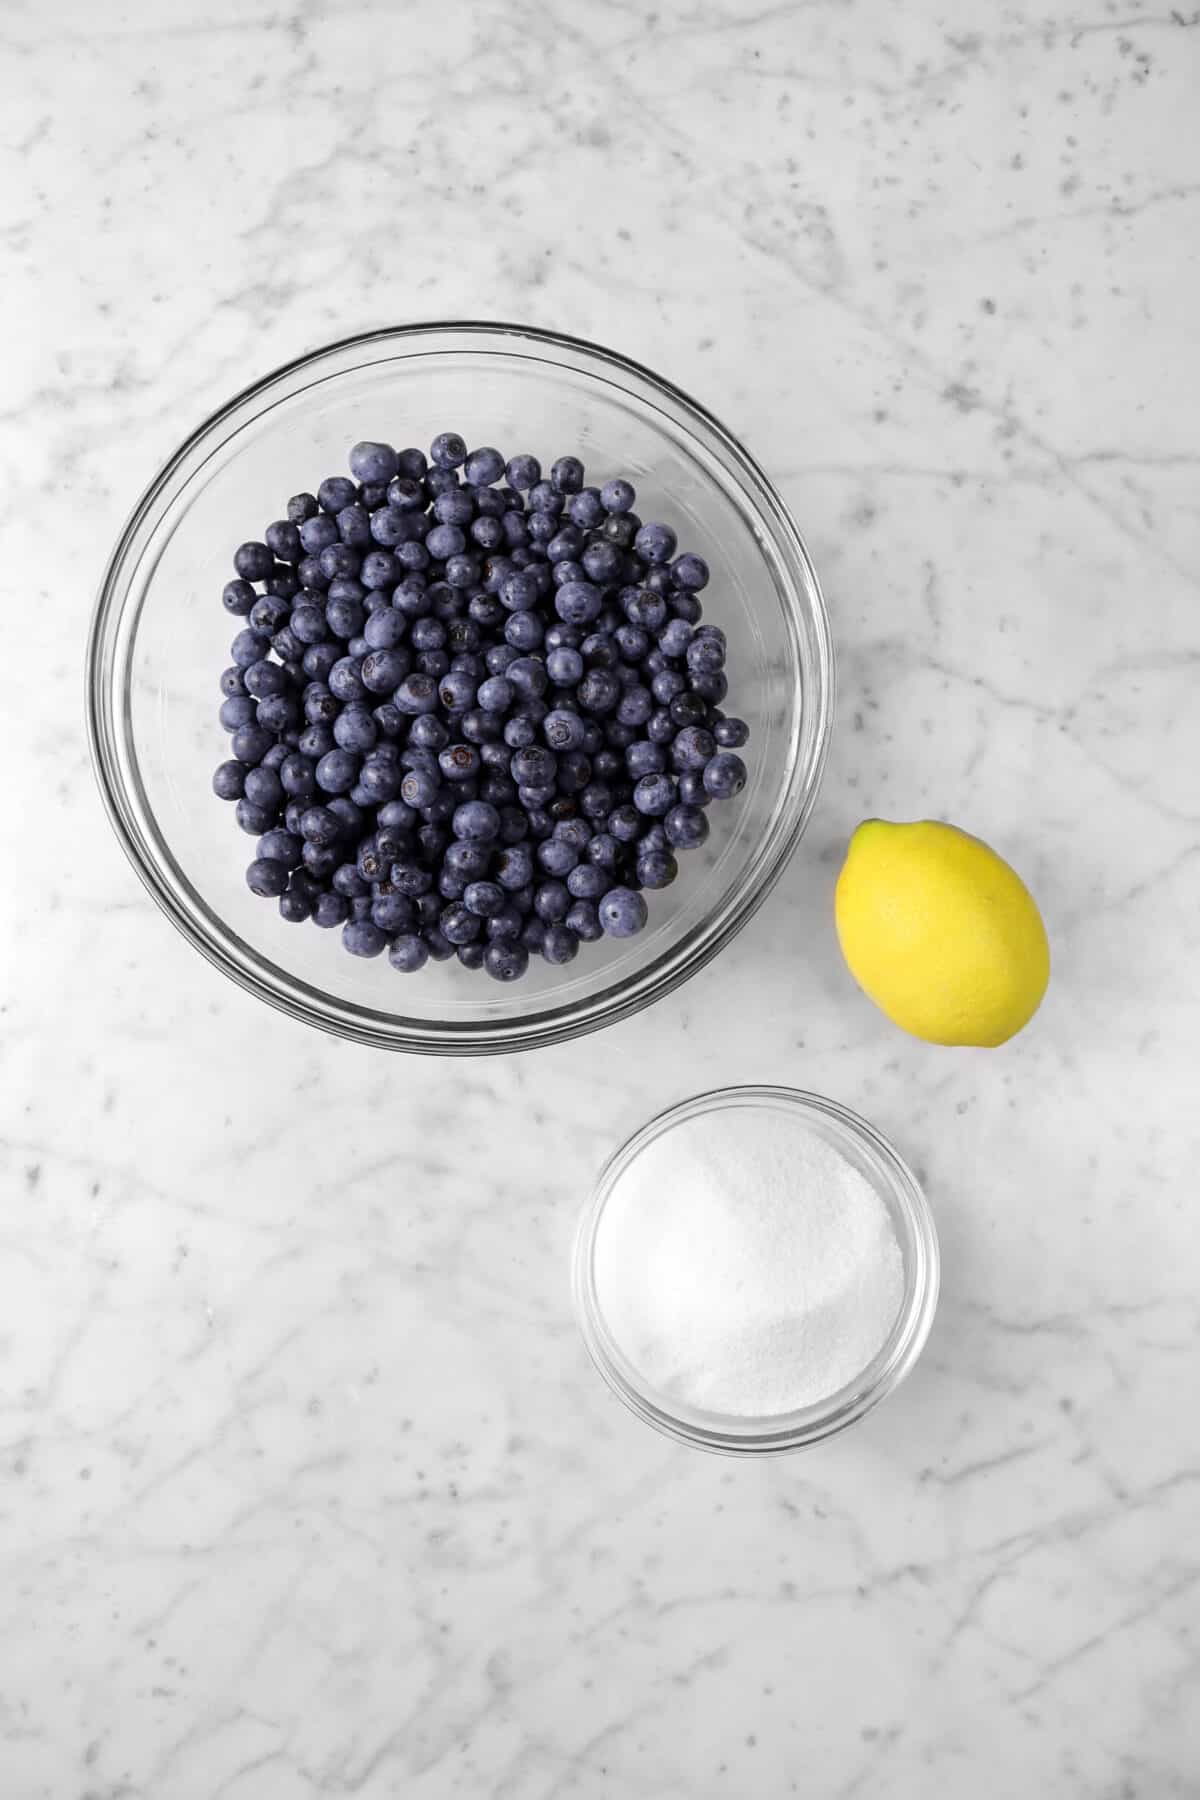 blueberries, a lemon, and sugar on a marle counter